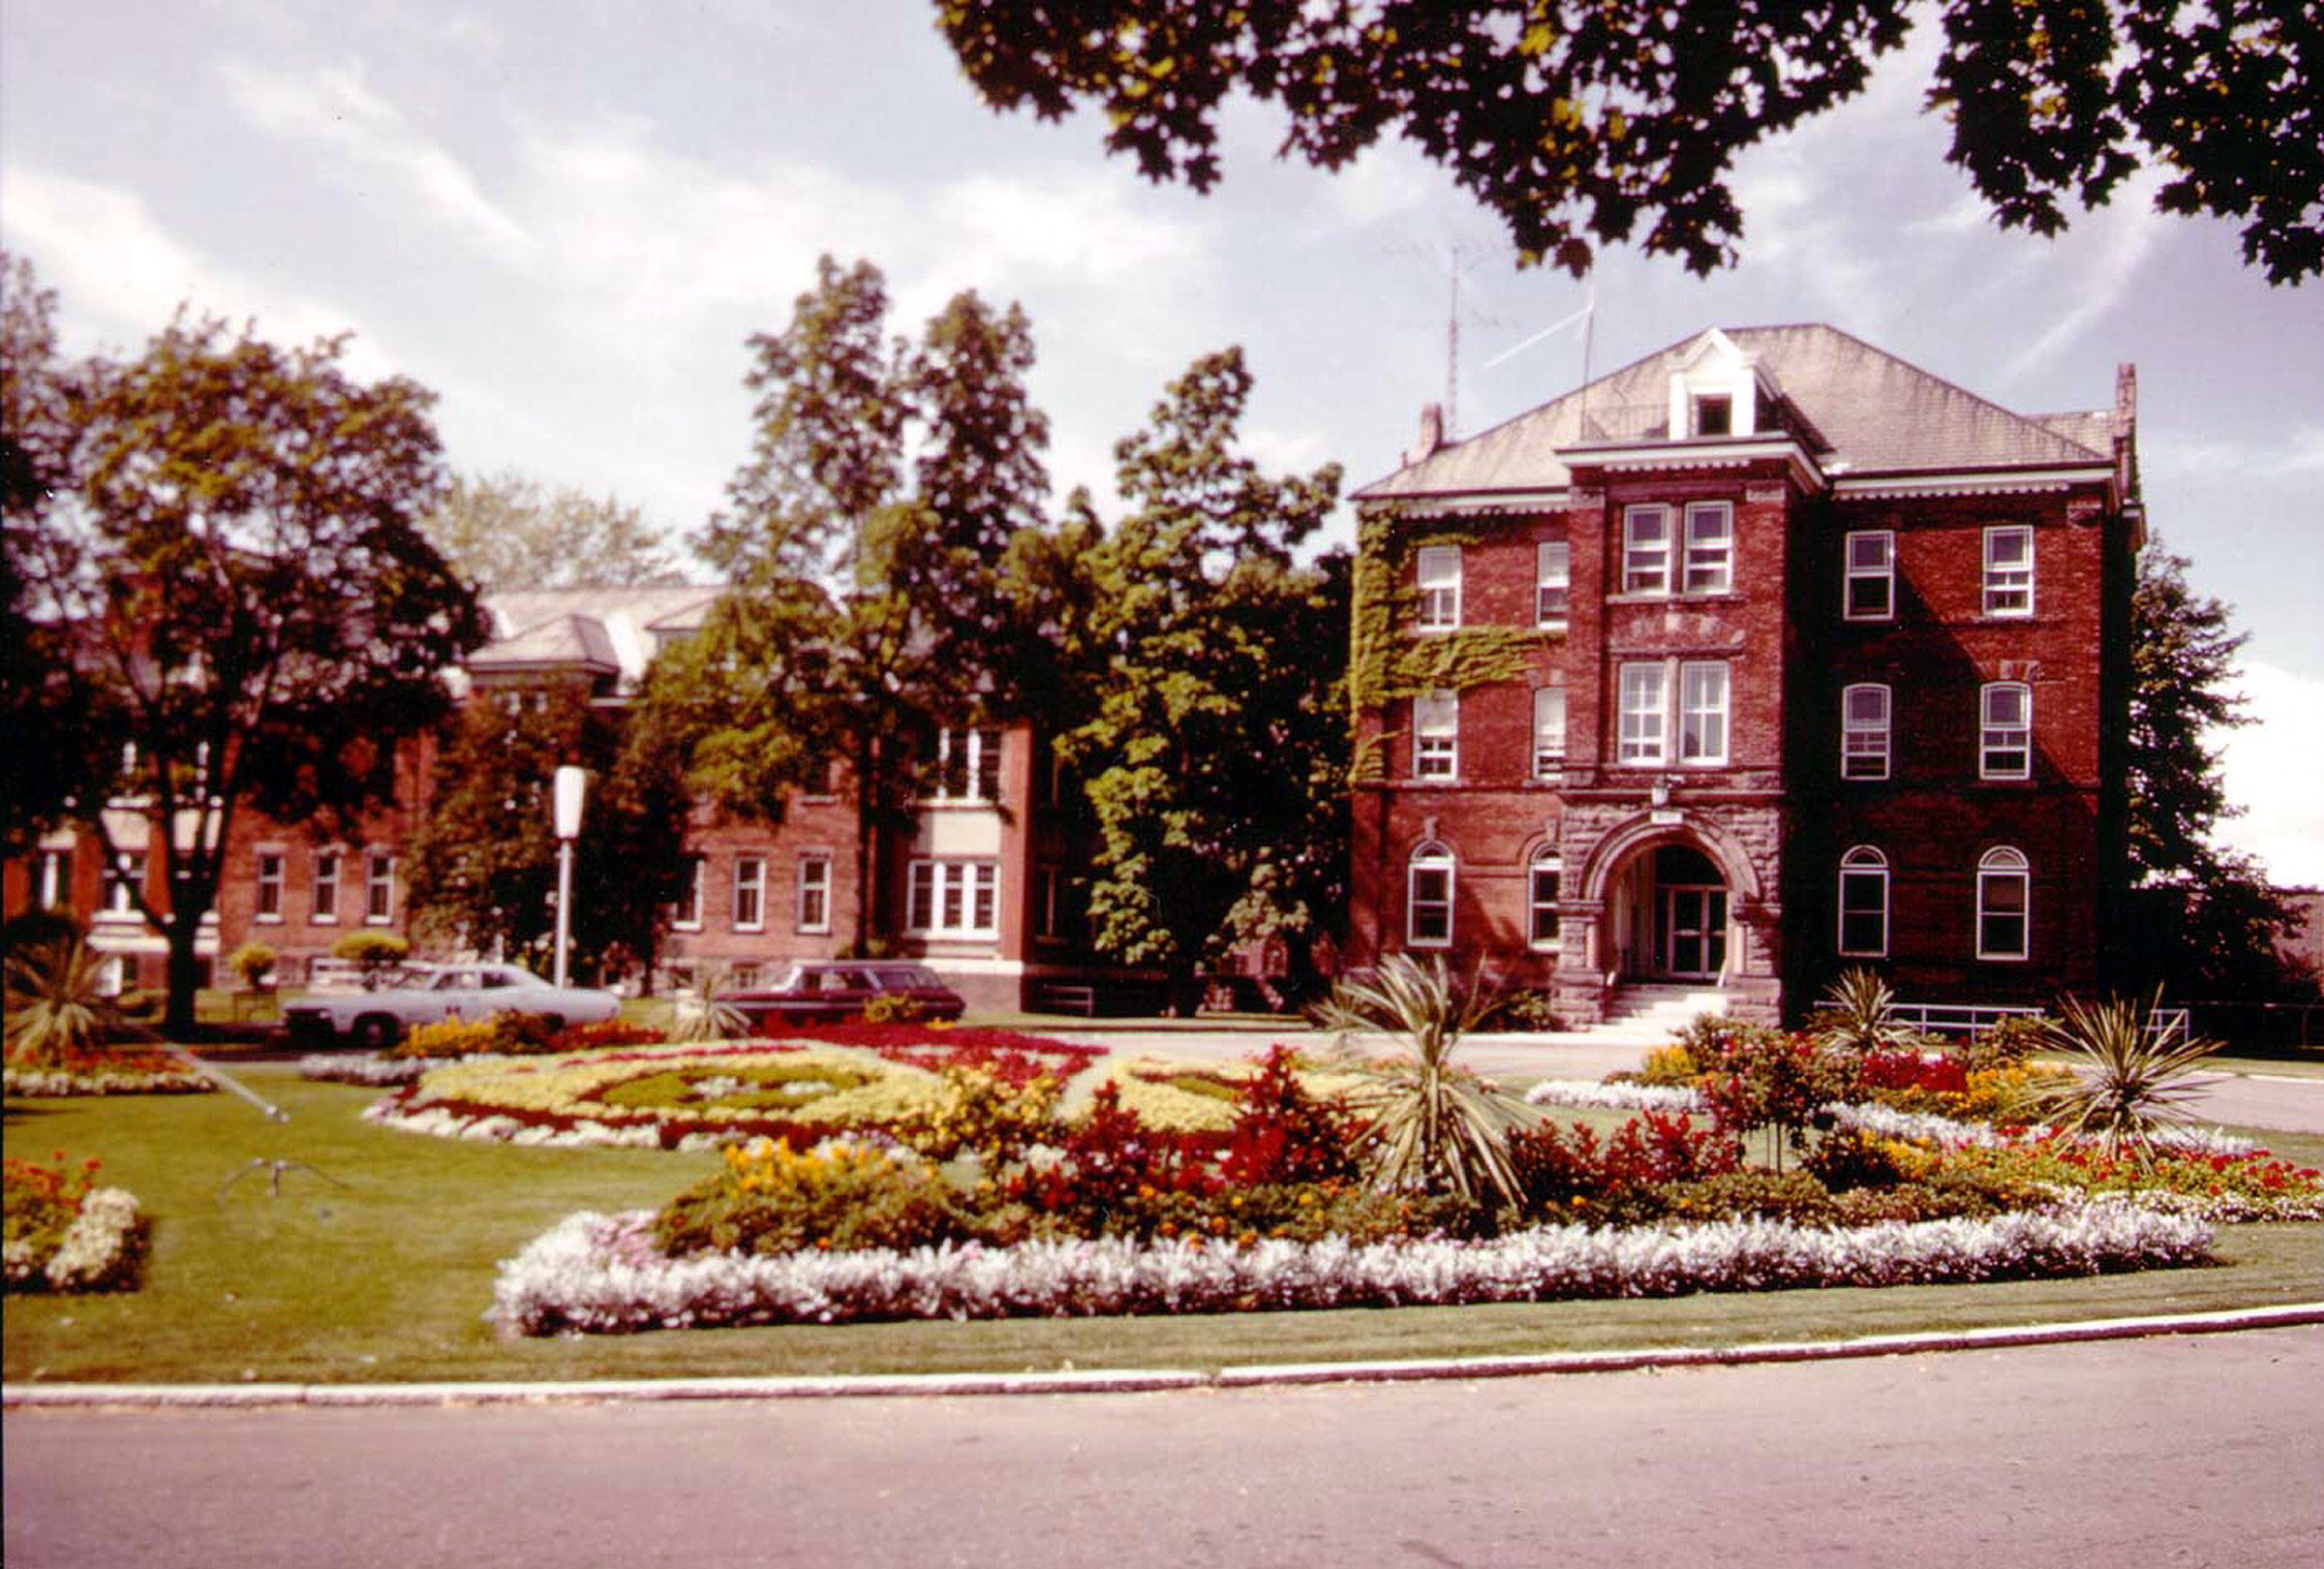 old brick institutional building with flower gardens in front